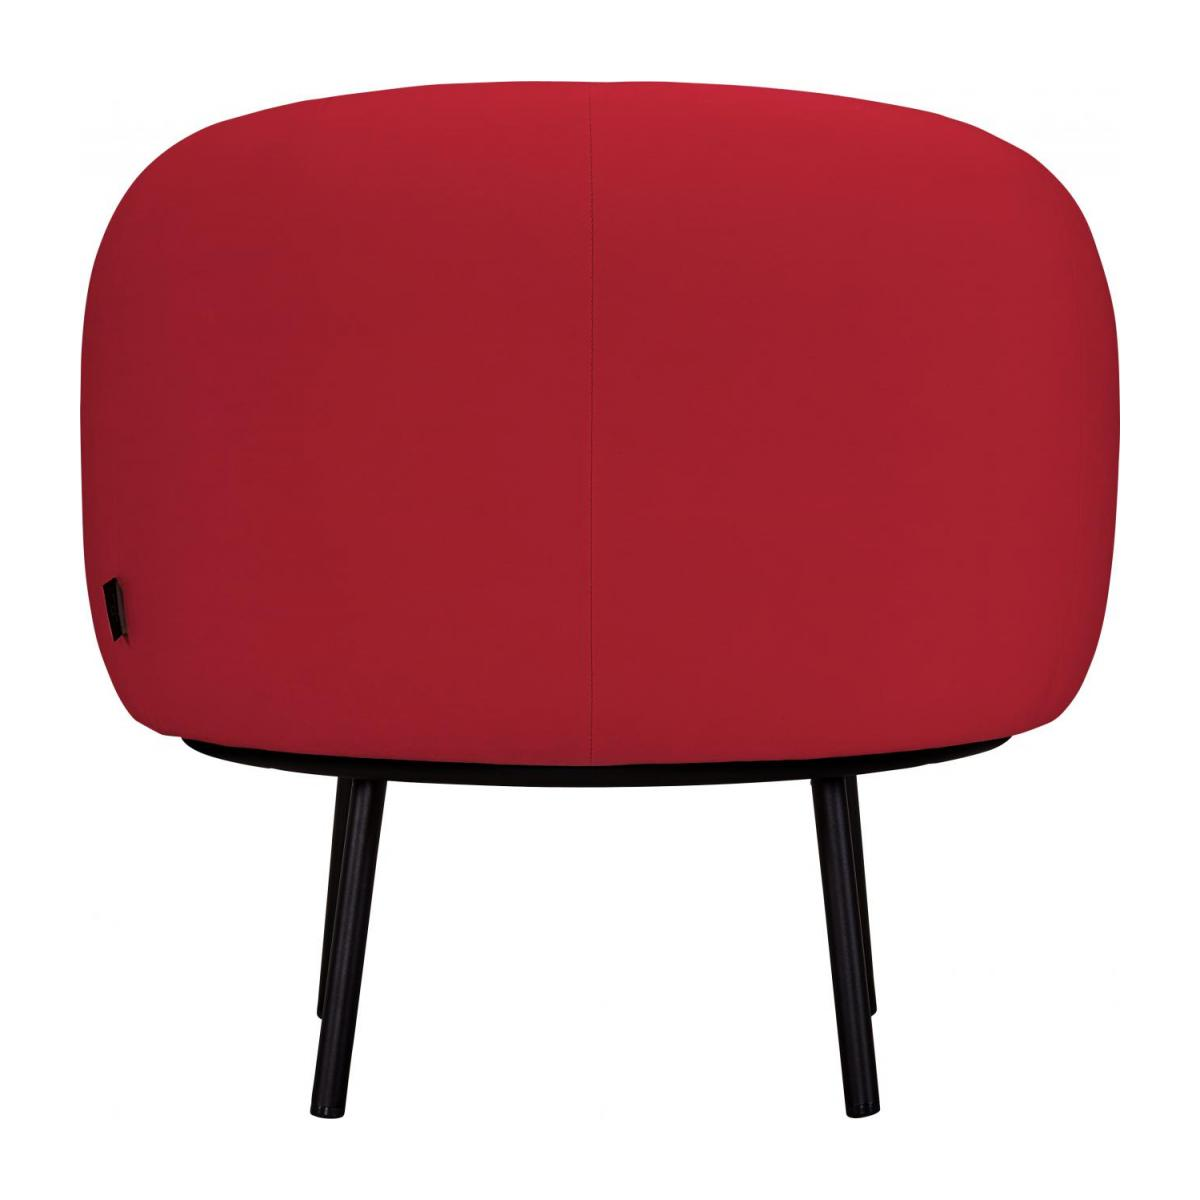 Fauteuil en velours - Rouge - Design by Adrien Carvès n°3